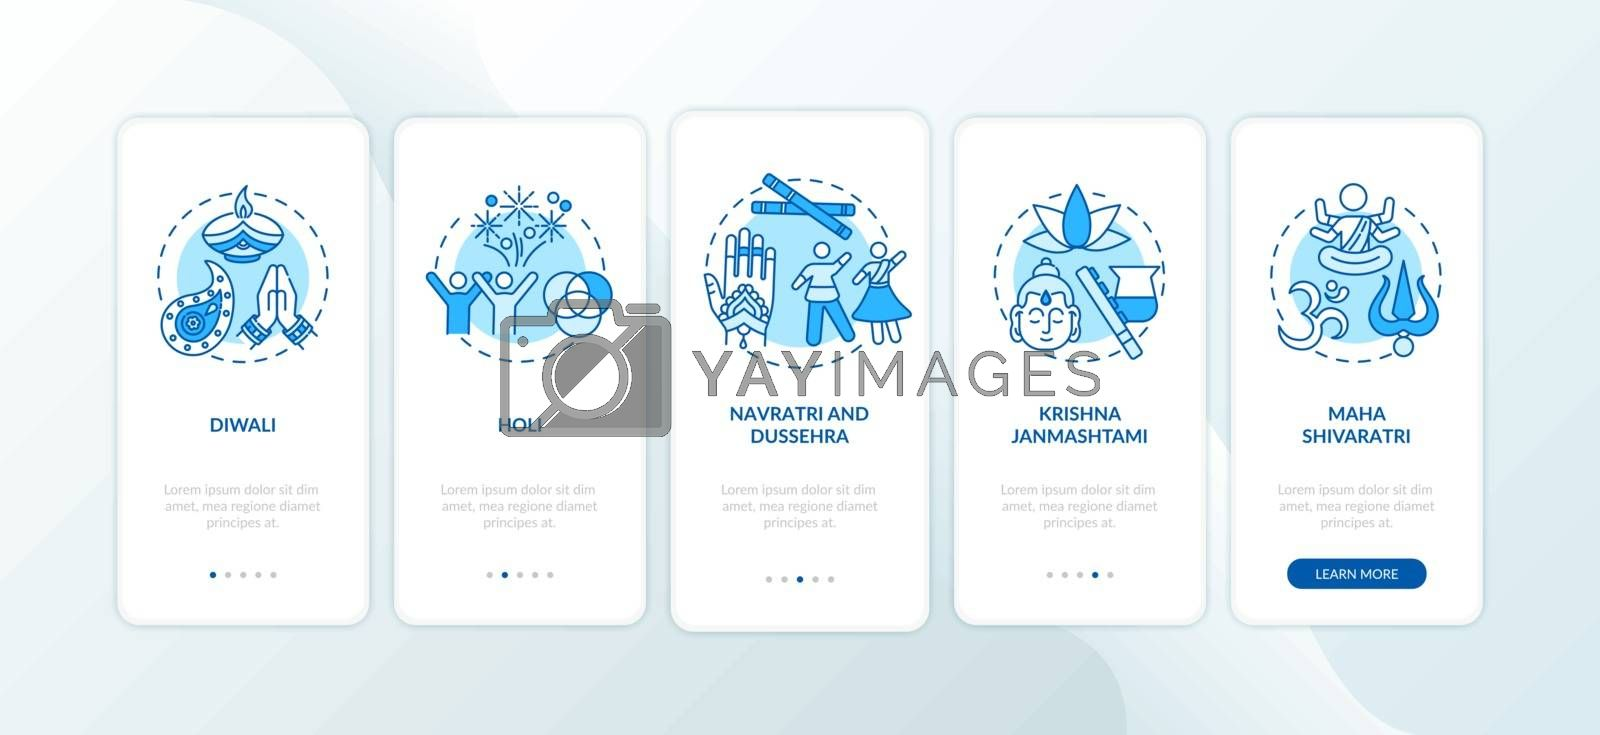 Top Hindu festivals onboarding mobile app page screen with concepts. Holi and Diwali. Navratri. Walkthrough 5 steps graphic instructions. UI vector template with RGB color illustrations